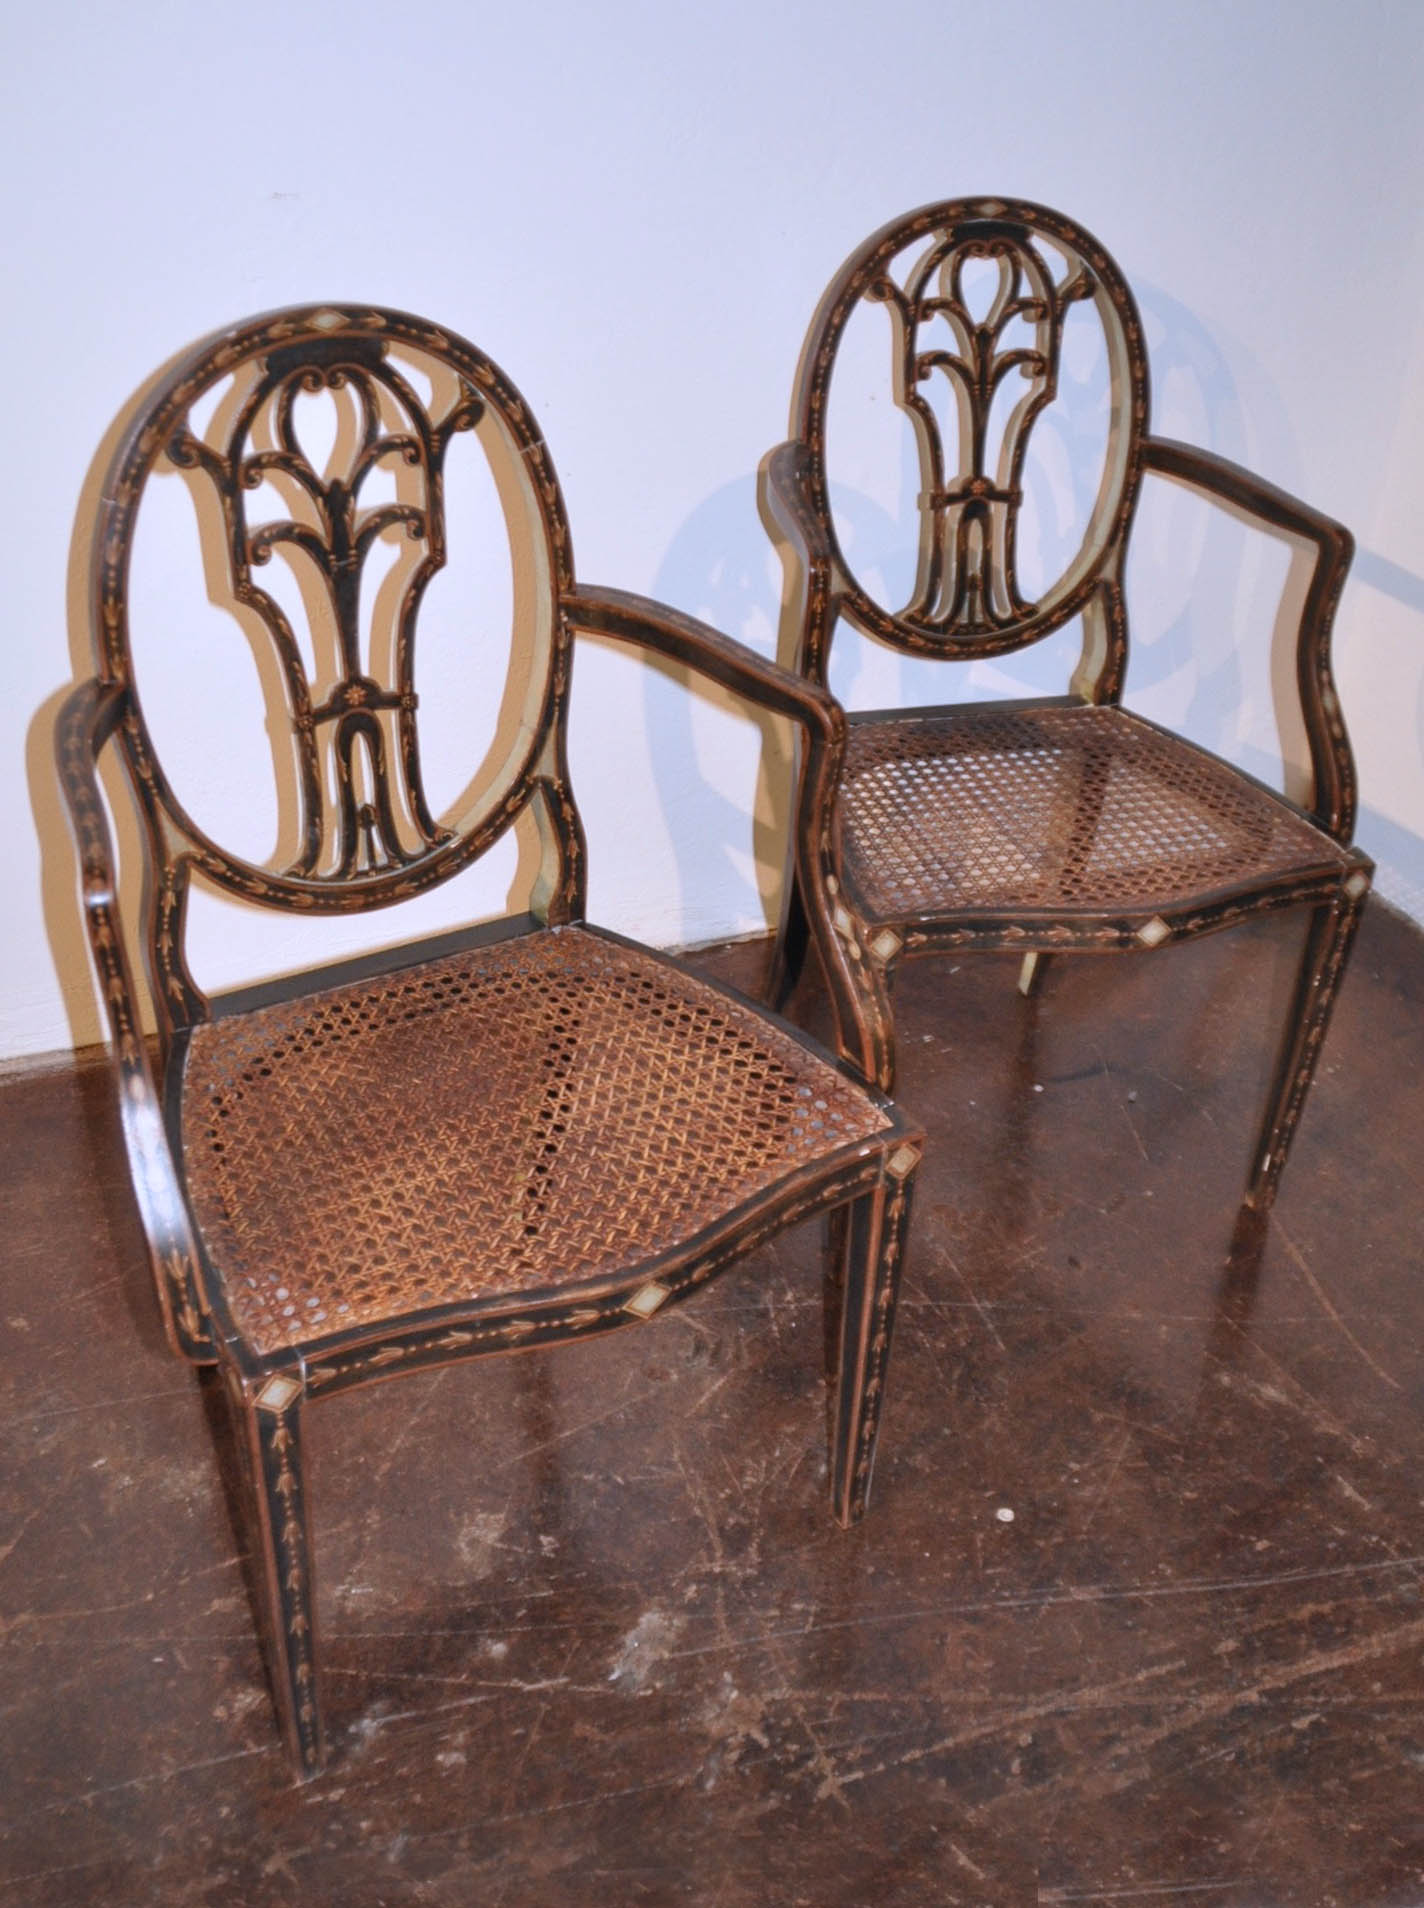 Stupendous Pair Of Italian Painted Wooden Chairs With Rattan Seats Home Interior And Landscaping Oversignezvosmurscom